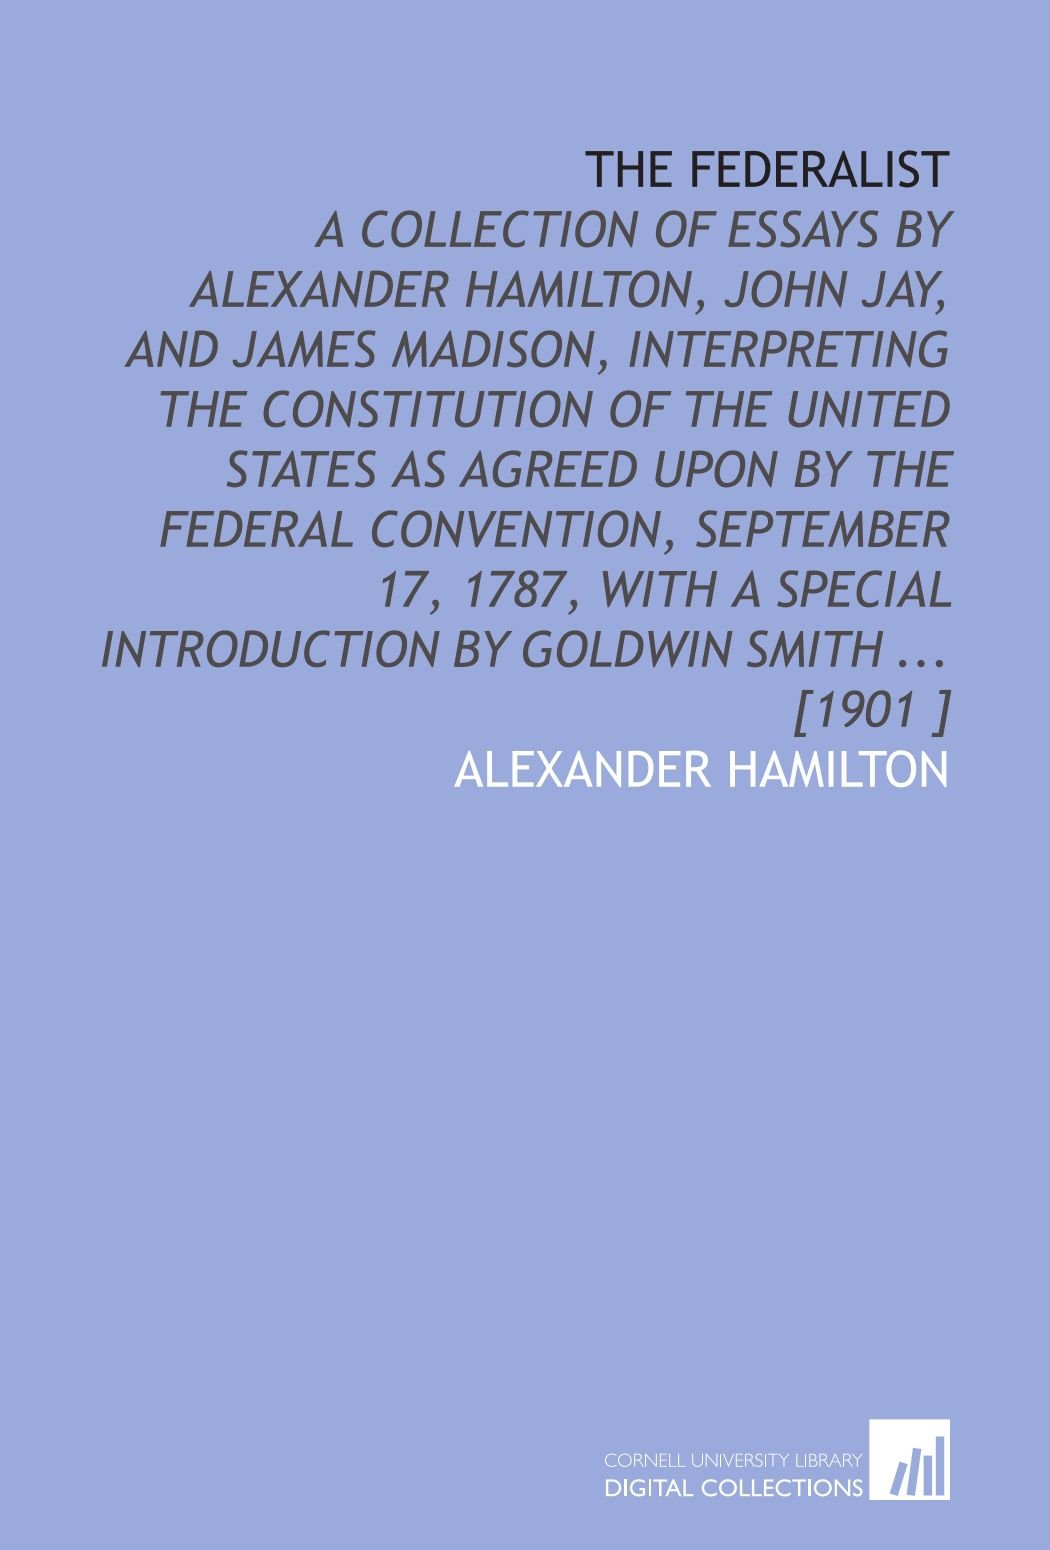 021 61nd3nk Pal Alexander Hamilton Essays Essay Frightening 51 Federalist Papers 78 Did Wrote Full